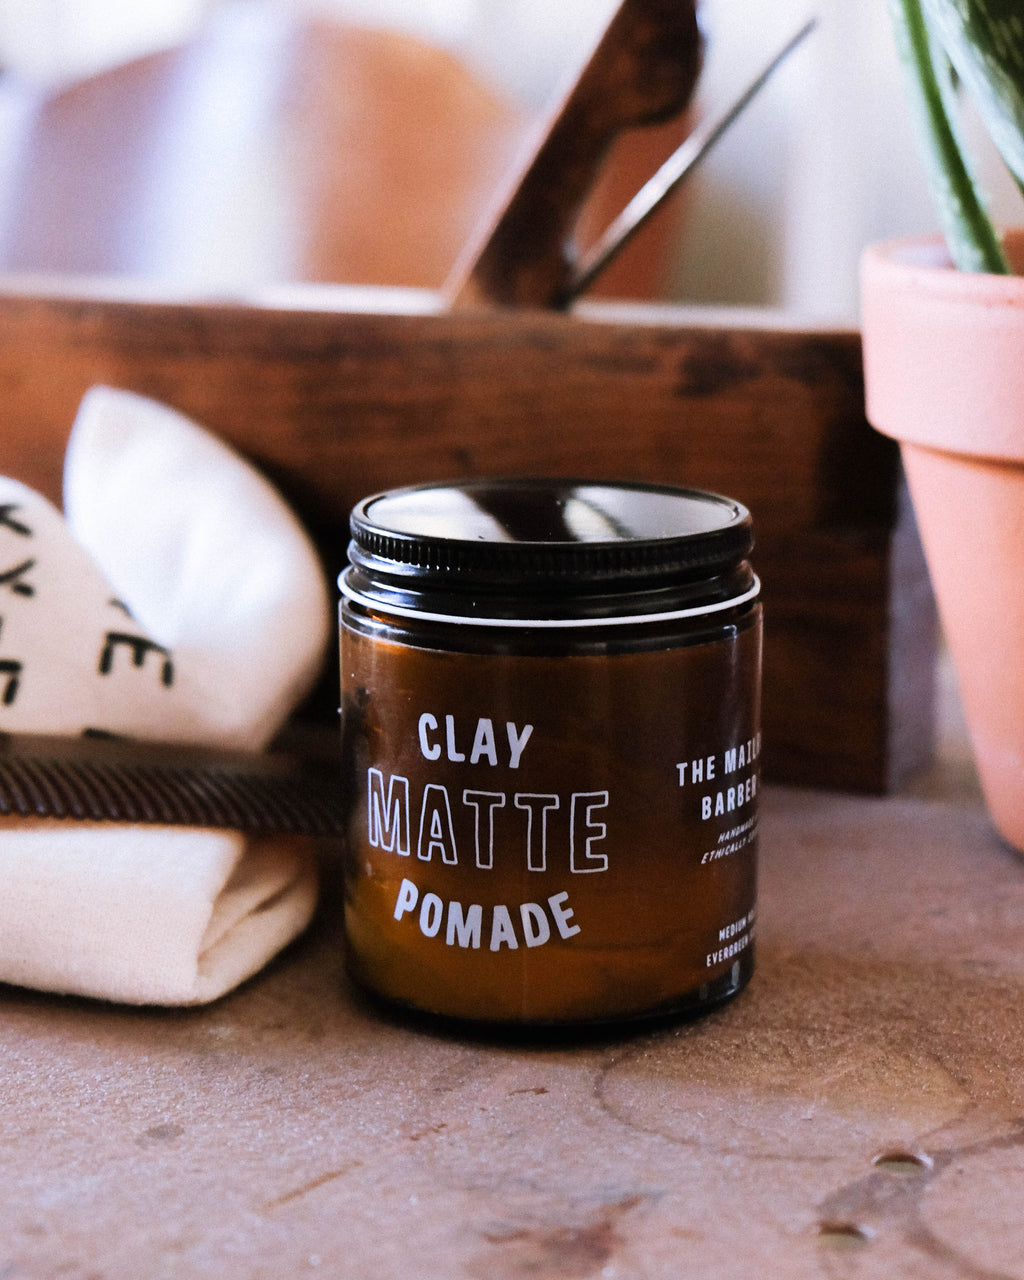 Mailroom Barber Clay Matte Pomade Makers Workshop